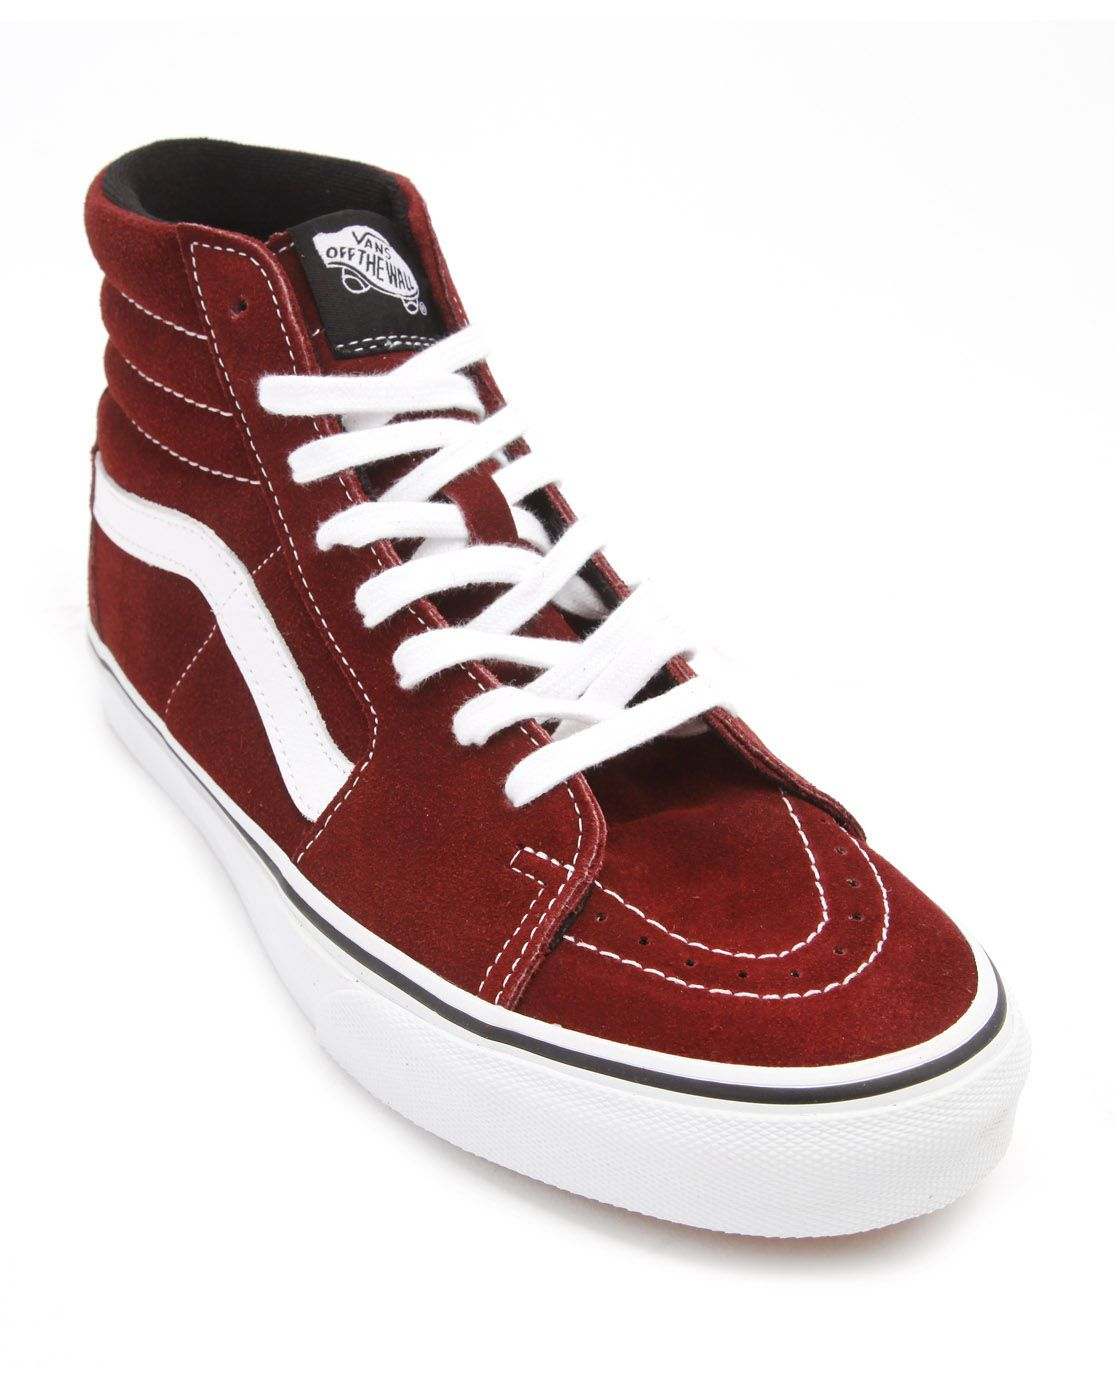 43c892a74e Vans Sk8 Hi Burgundy Suede Sneakers in Red for Men (burgundy)